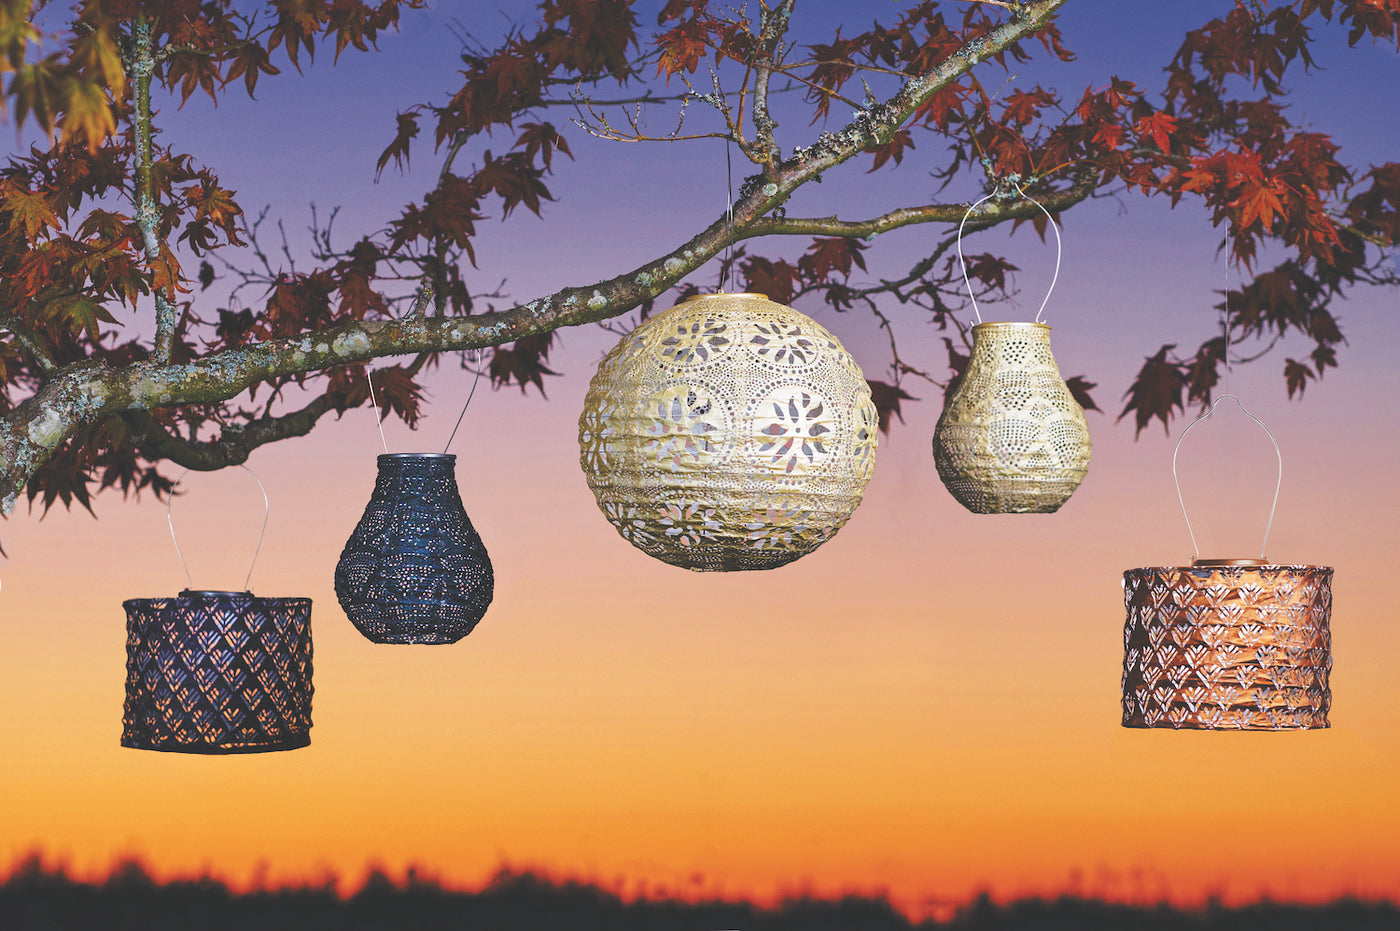 THE LAST LANTERN YOU WILL NEED! SOJI LANTERNS MADE FROM TYVEK MATERIAL